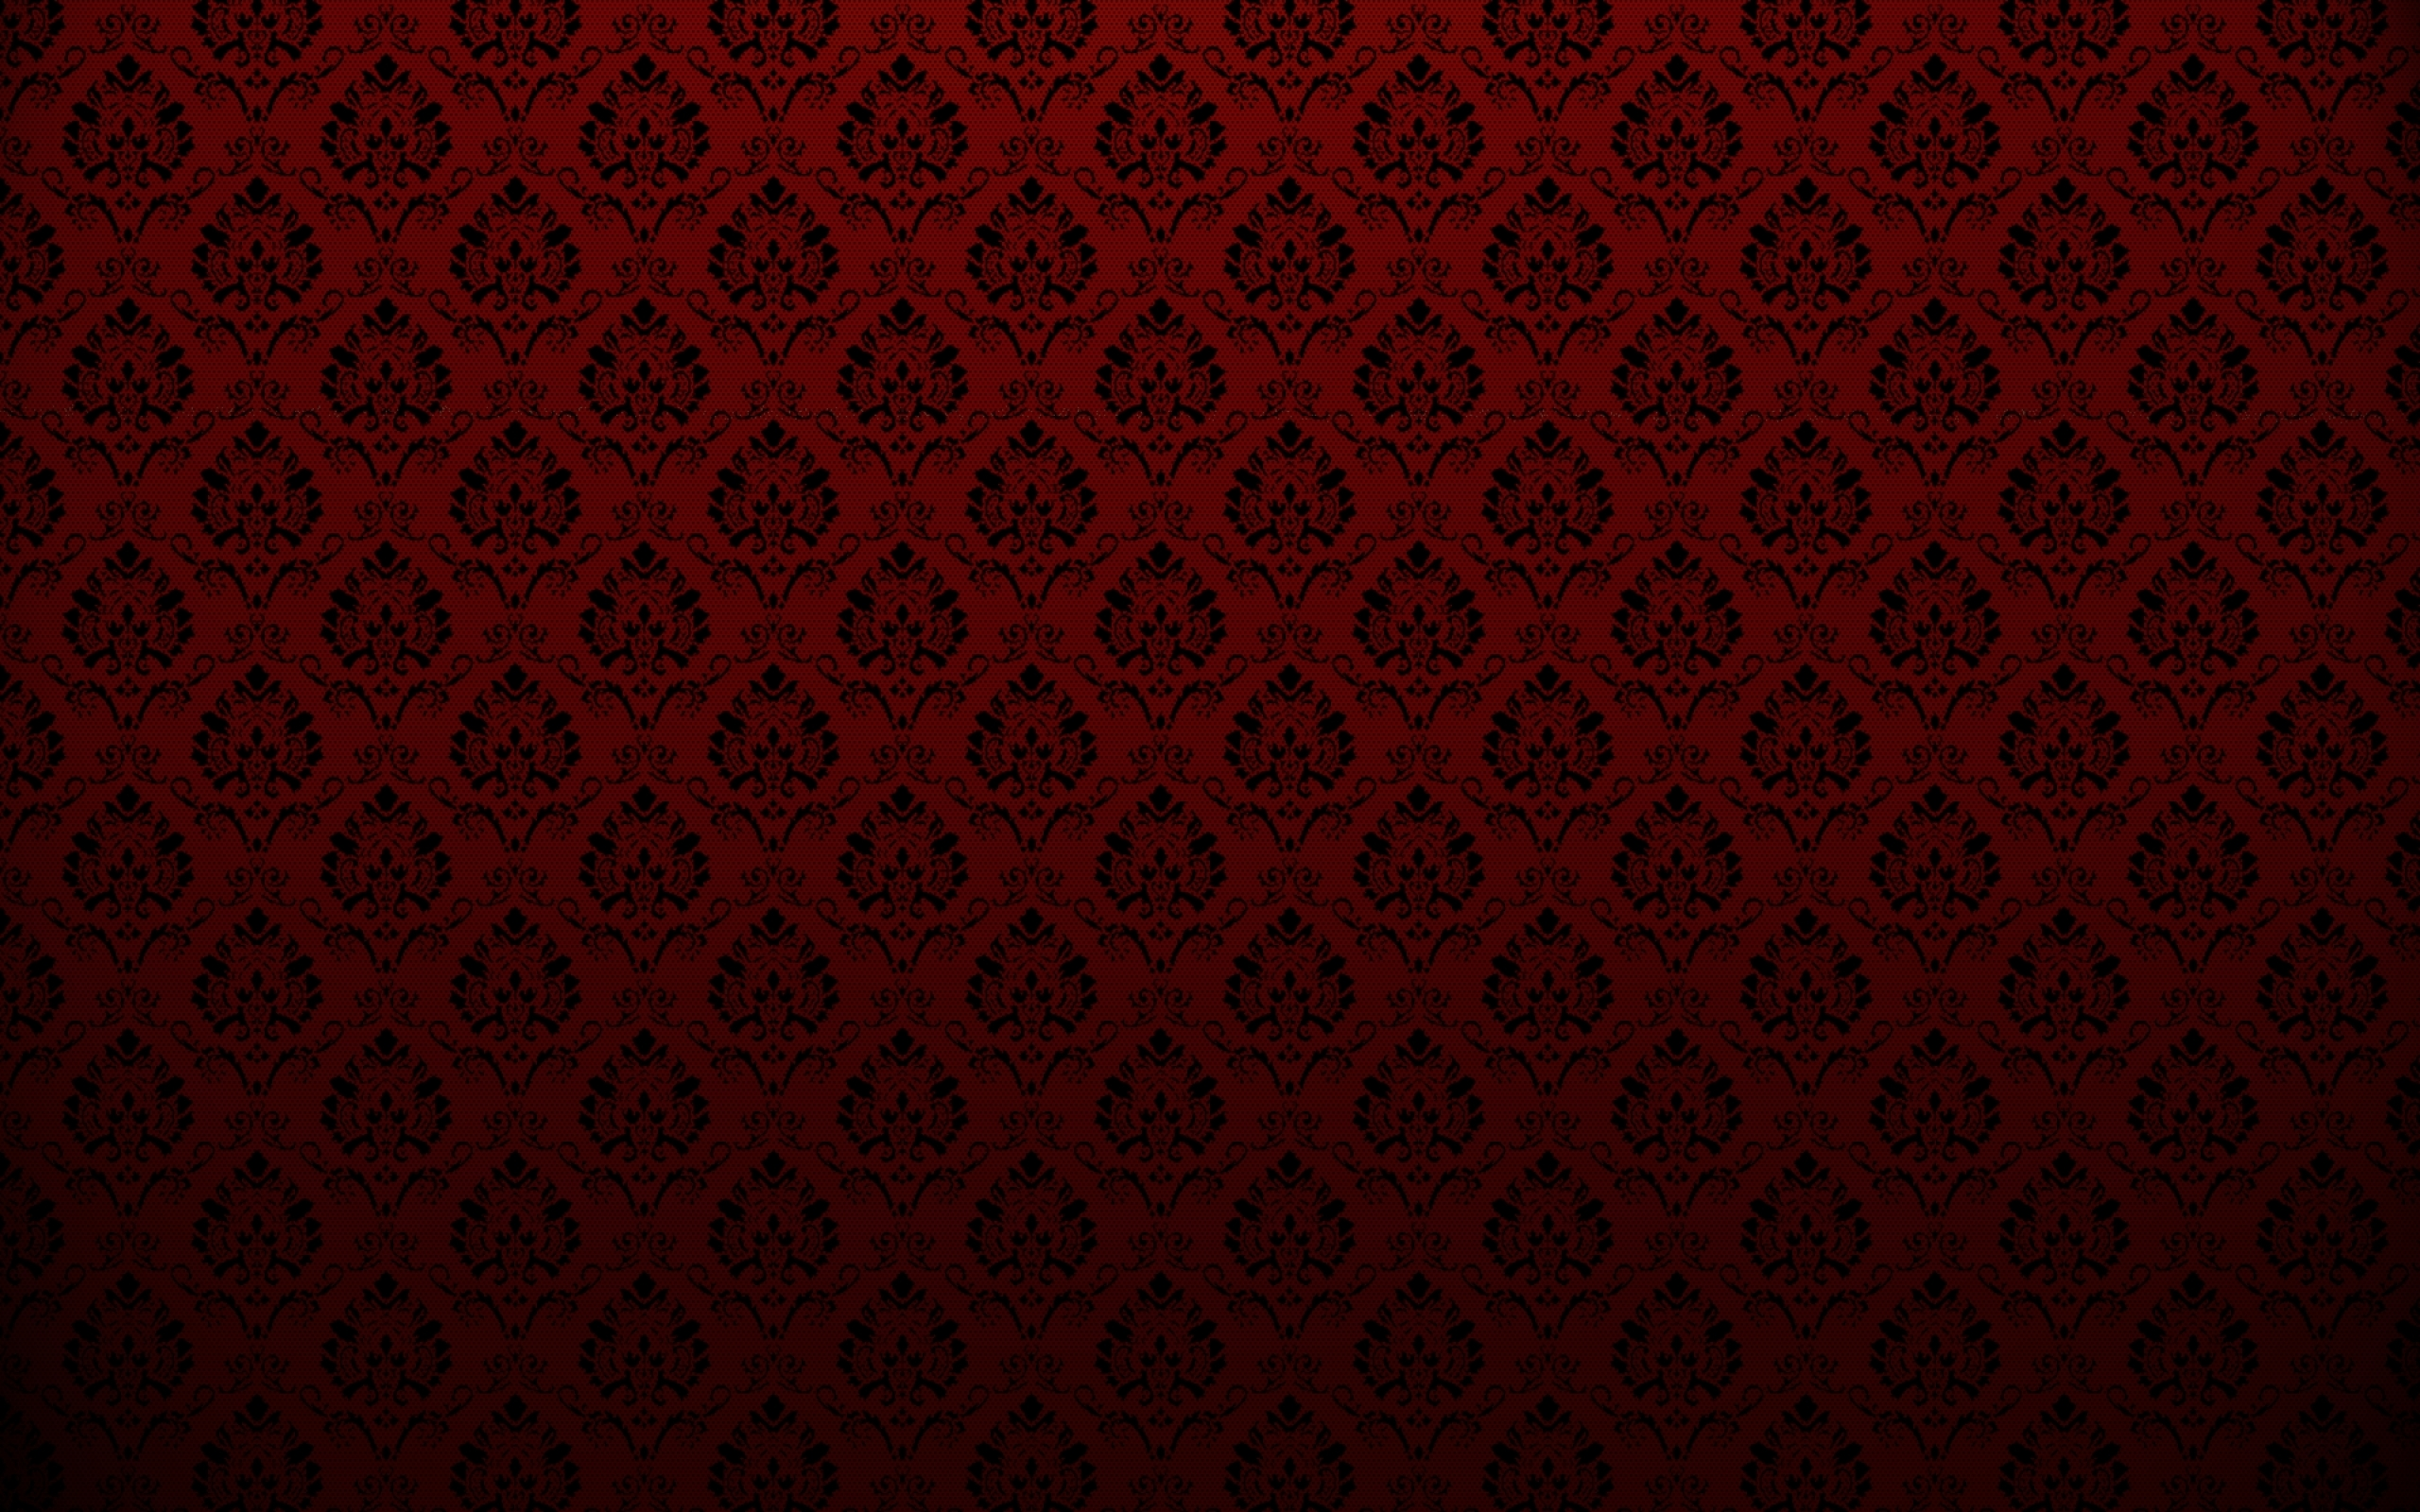 red design full hd wallpaper and background image